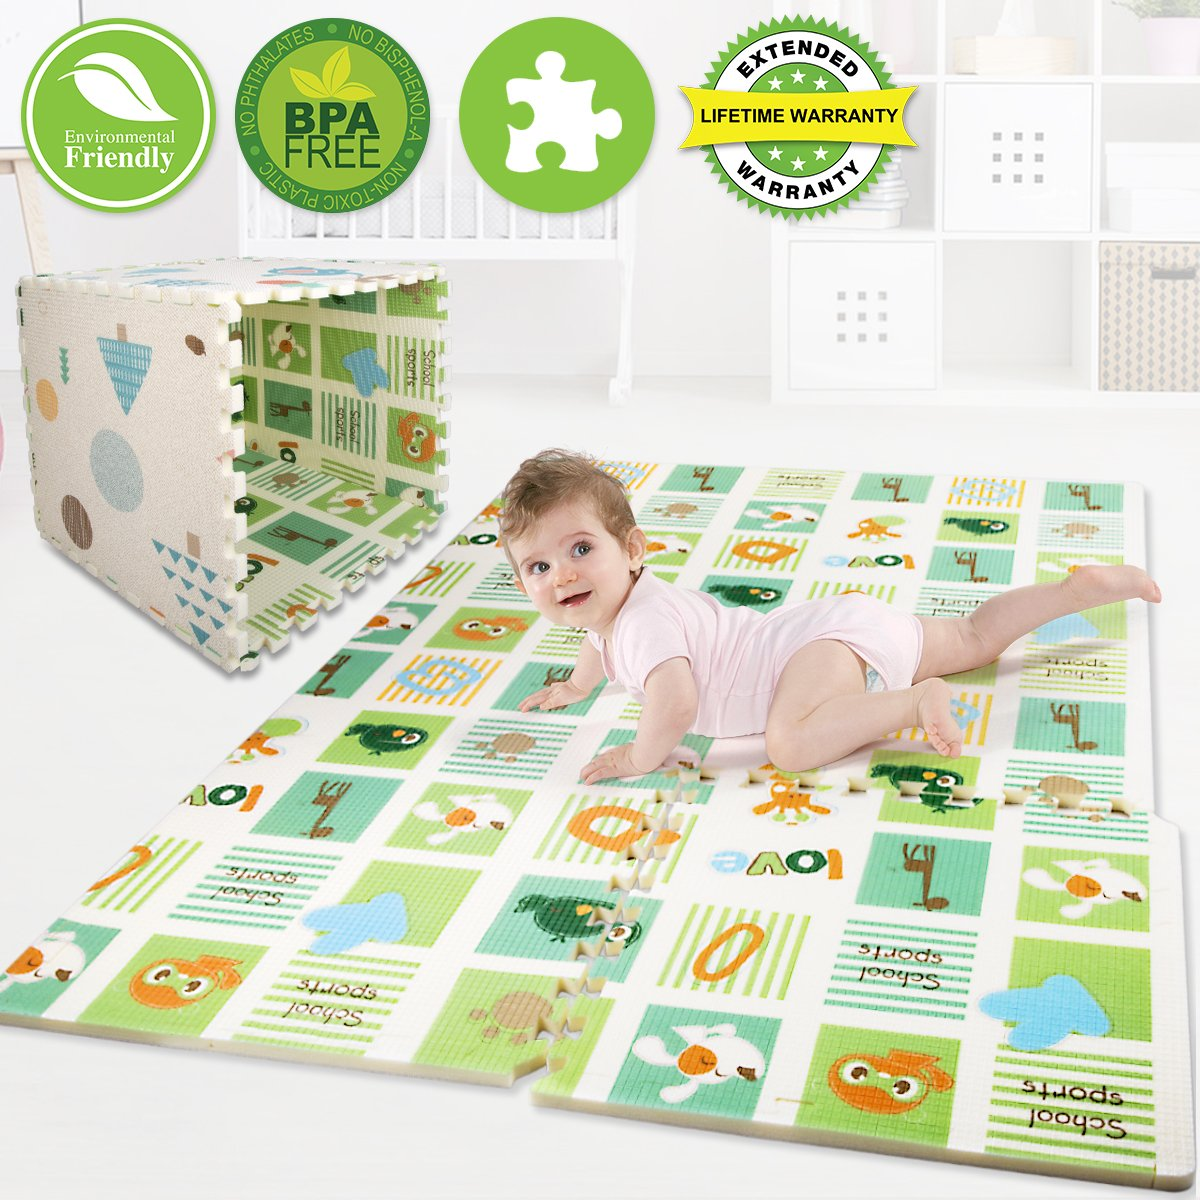 Children Rugs Kids Carpet, Premium XPE Puzzle Play Mats Non Toxic, Reversible Thick Baby Crawling Rugs Interlocking Tiles with Borders Play Room Nursery Playing Mat Toddler Infant Exercise Game Mat by Dmall